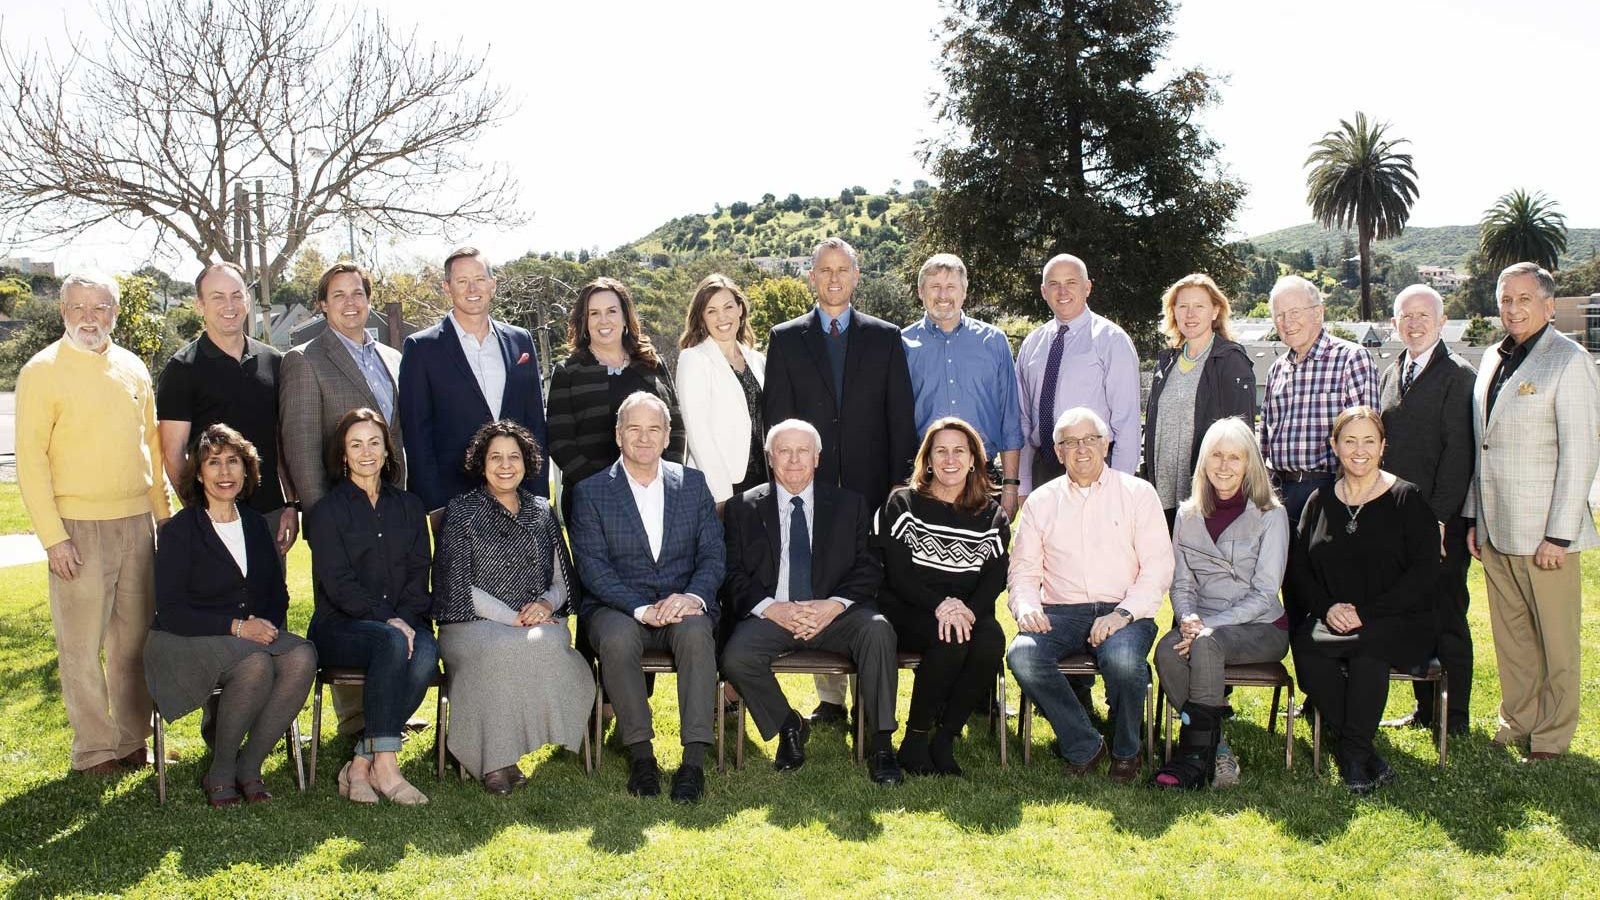 a photo of the board of directors for the San Luis Coastal Education Foundation